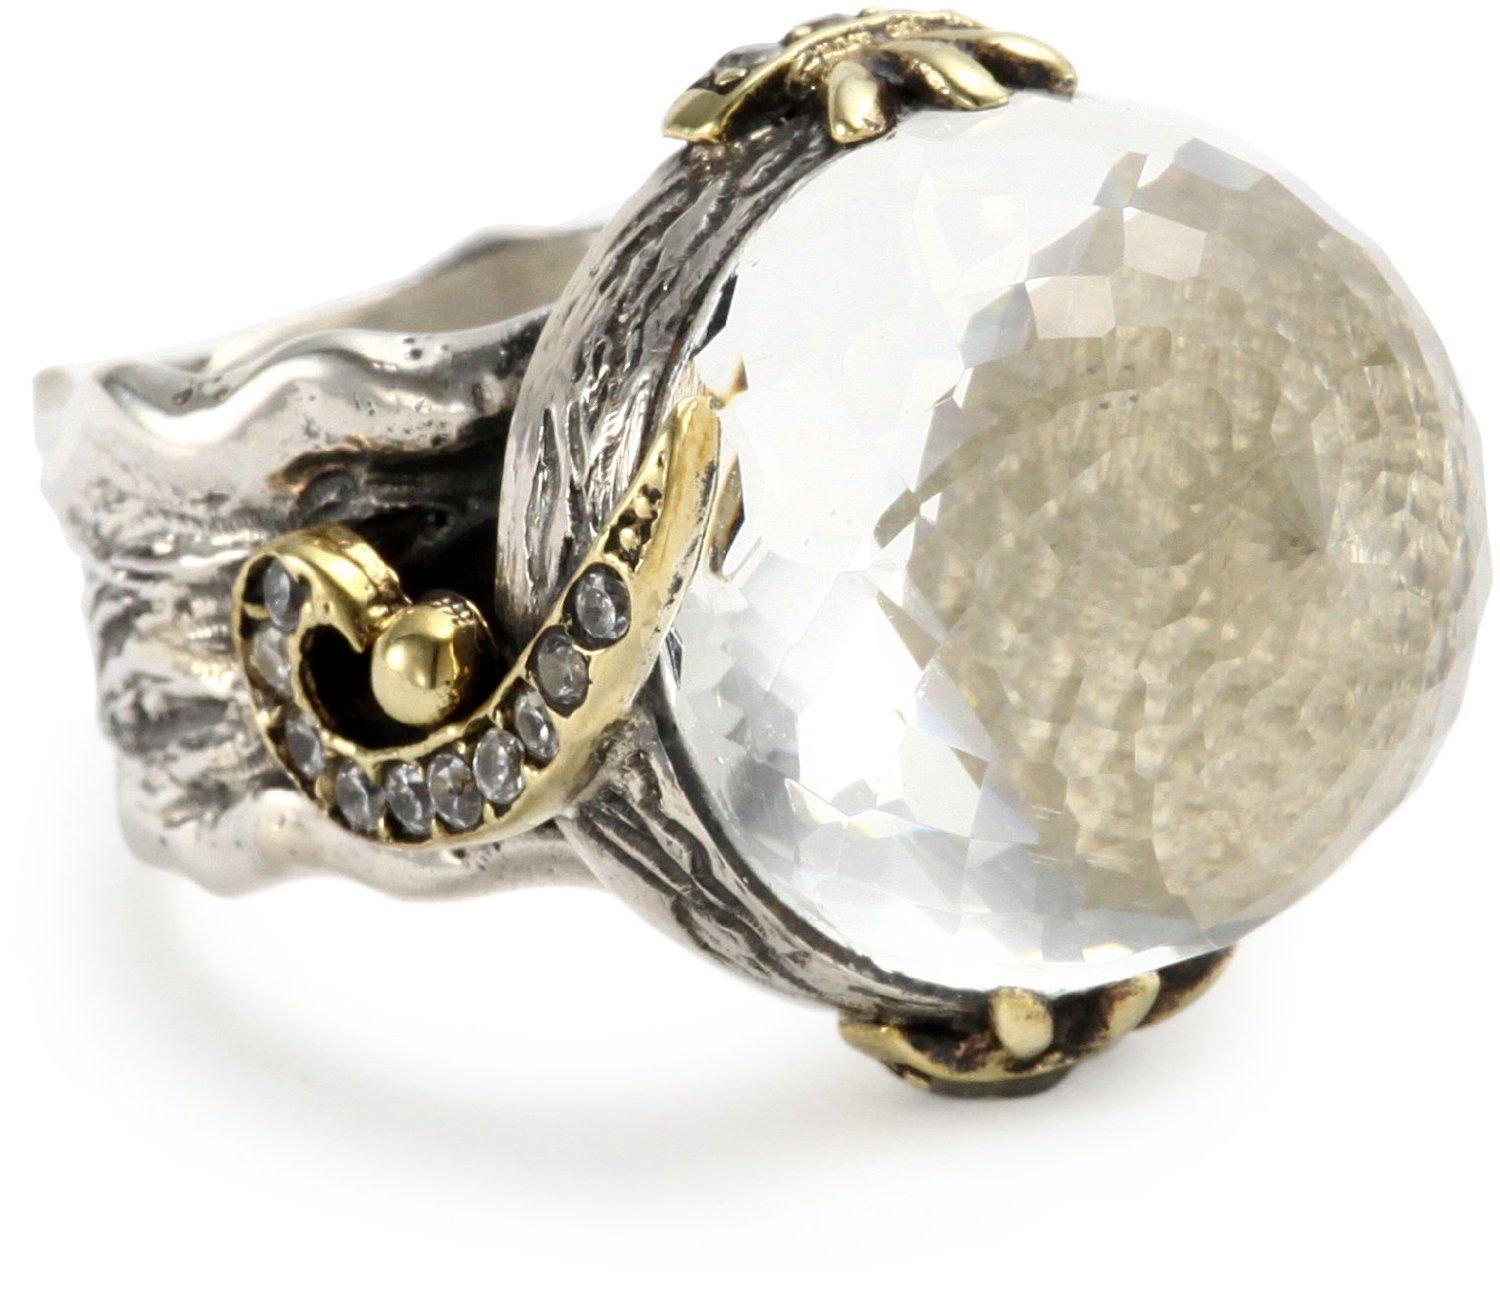 BORA Clear Quartz Bahar Ring Price 28500 Click on the image